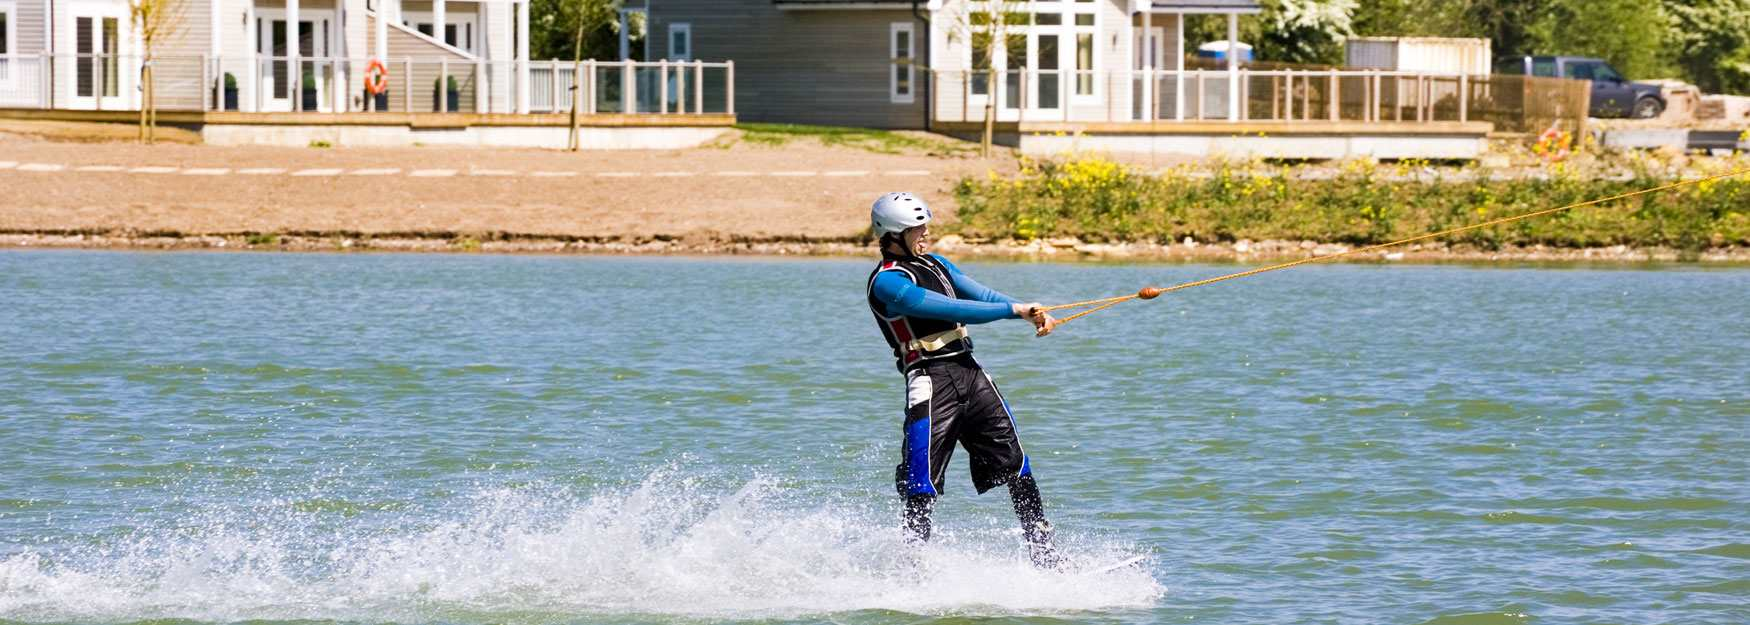 Watersports at Cotswold Water Park